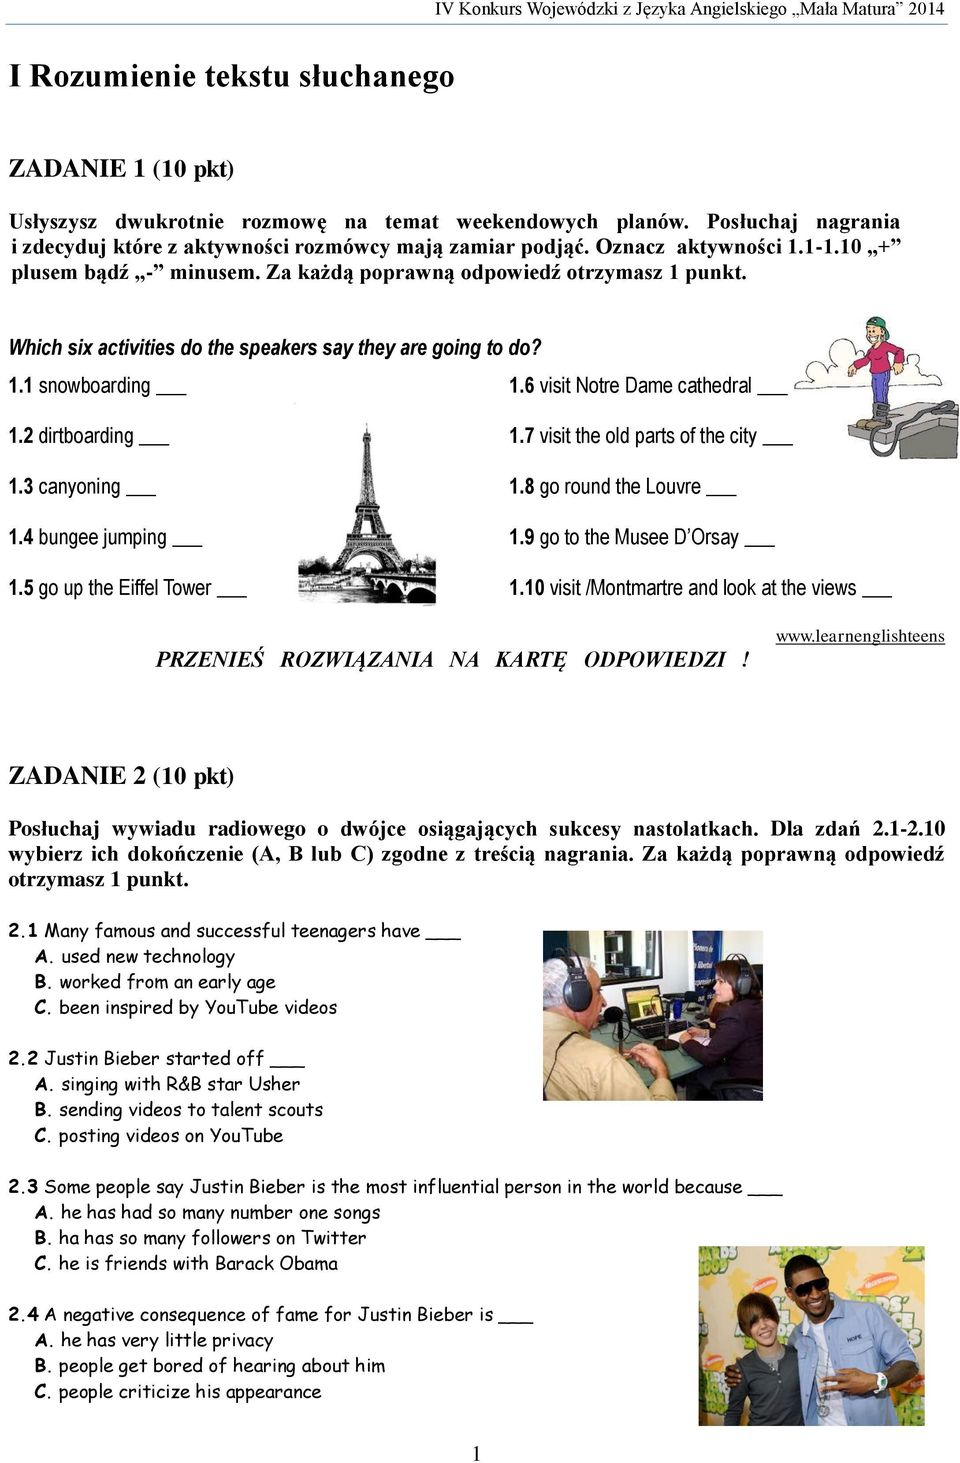 6 visit Notre Dame cathedral 1.2 dirtboarding 1.3 canyoning 1.4 bungee jumping 1.5 go up the Eiffel Tower 1.7 visit the old parts of the city 1.8 go round the Louvre 1.9 go to the Musee D Orsay 1.